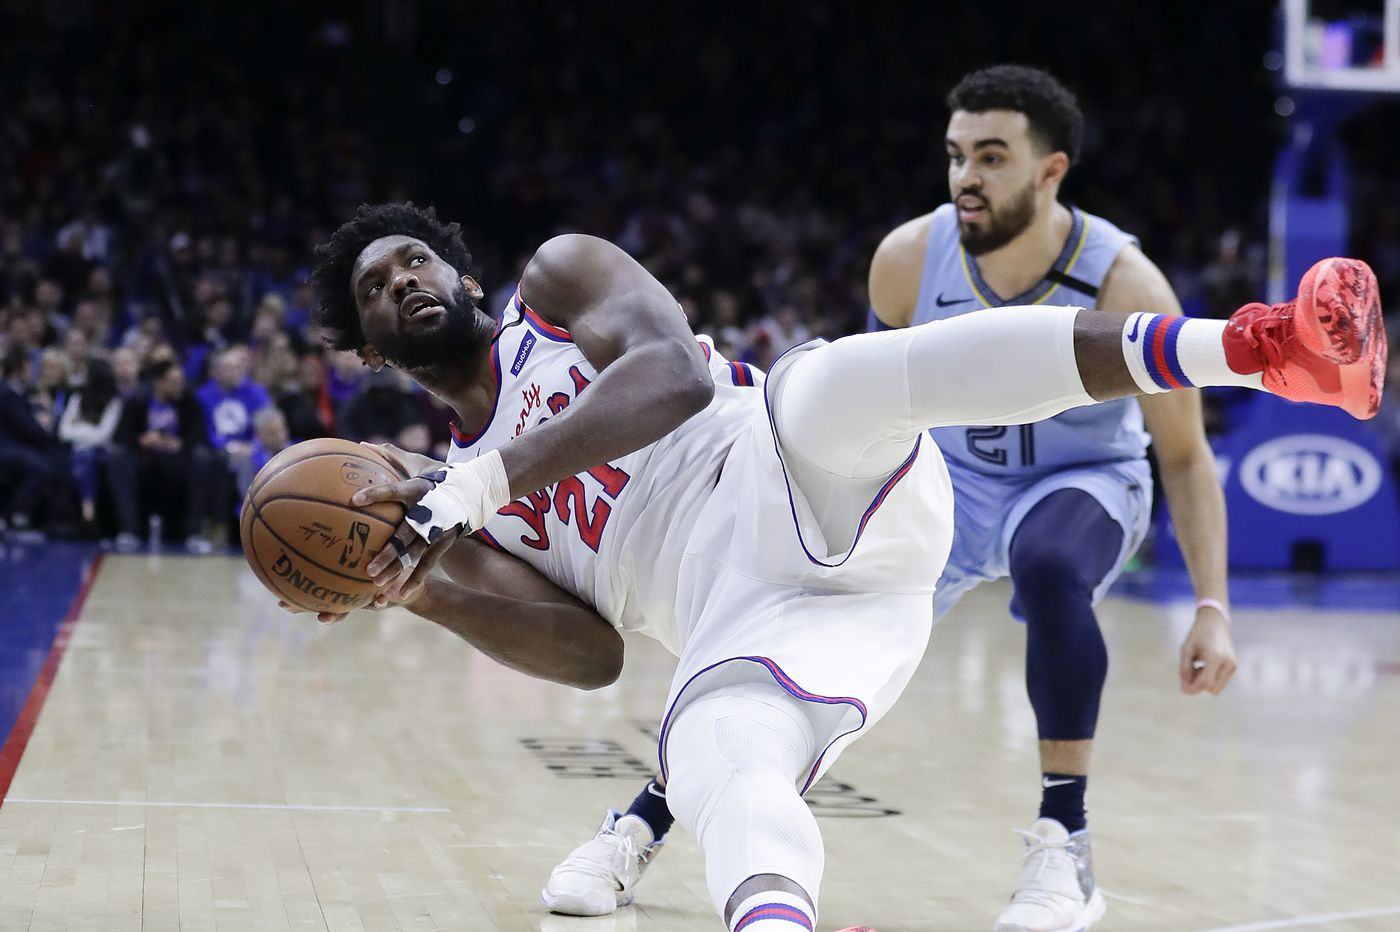 Joel Embiid is questionable for the Sixers game on Sunday against Chicago